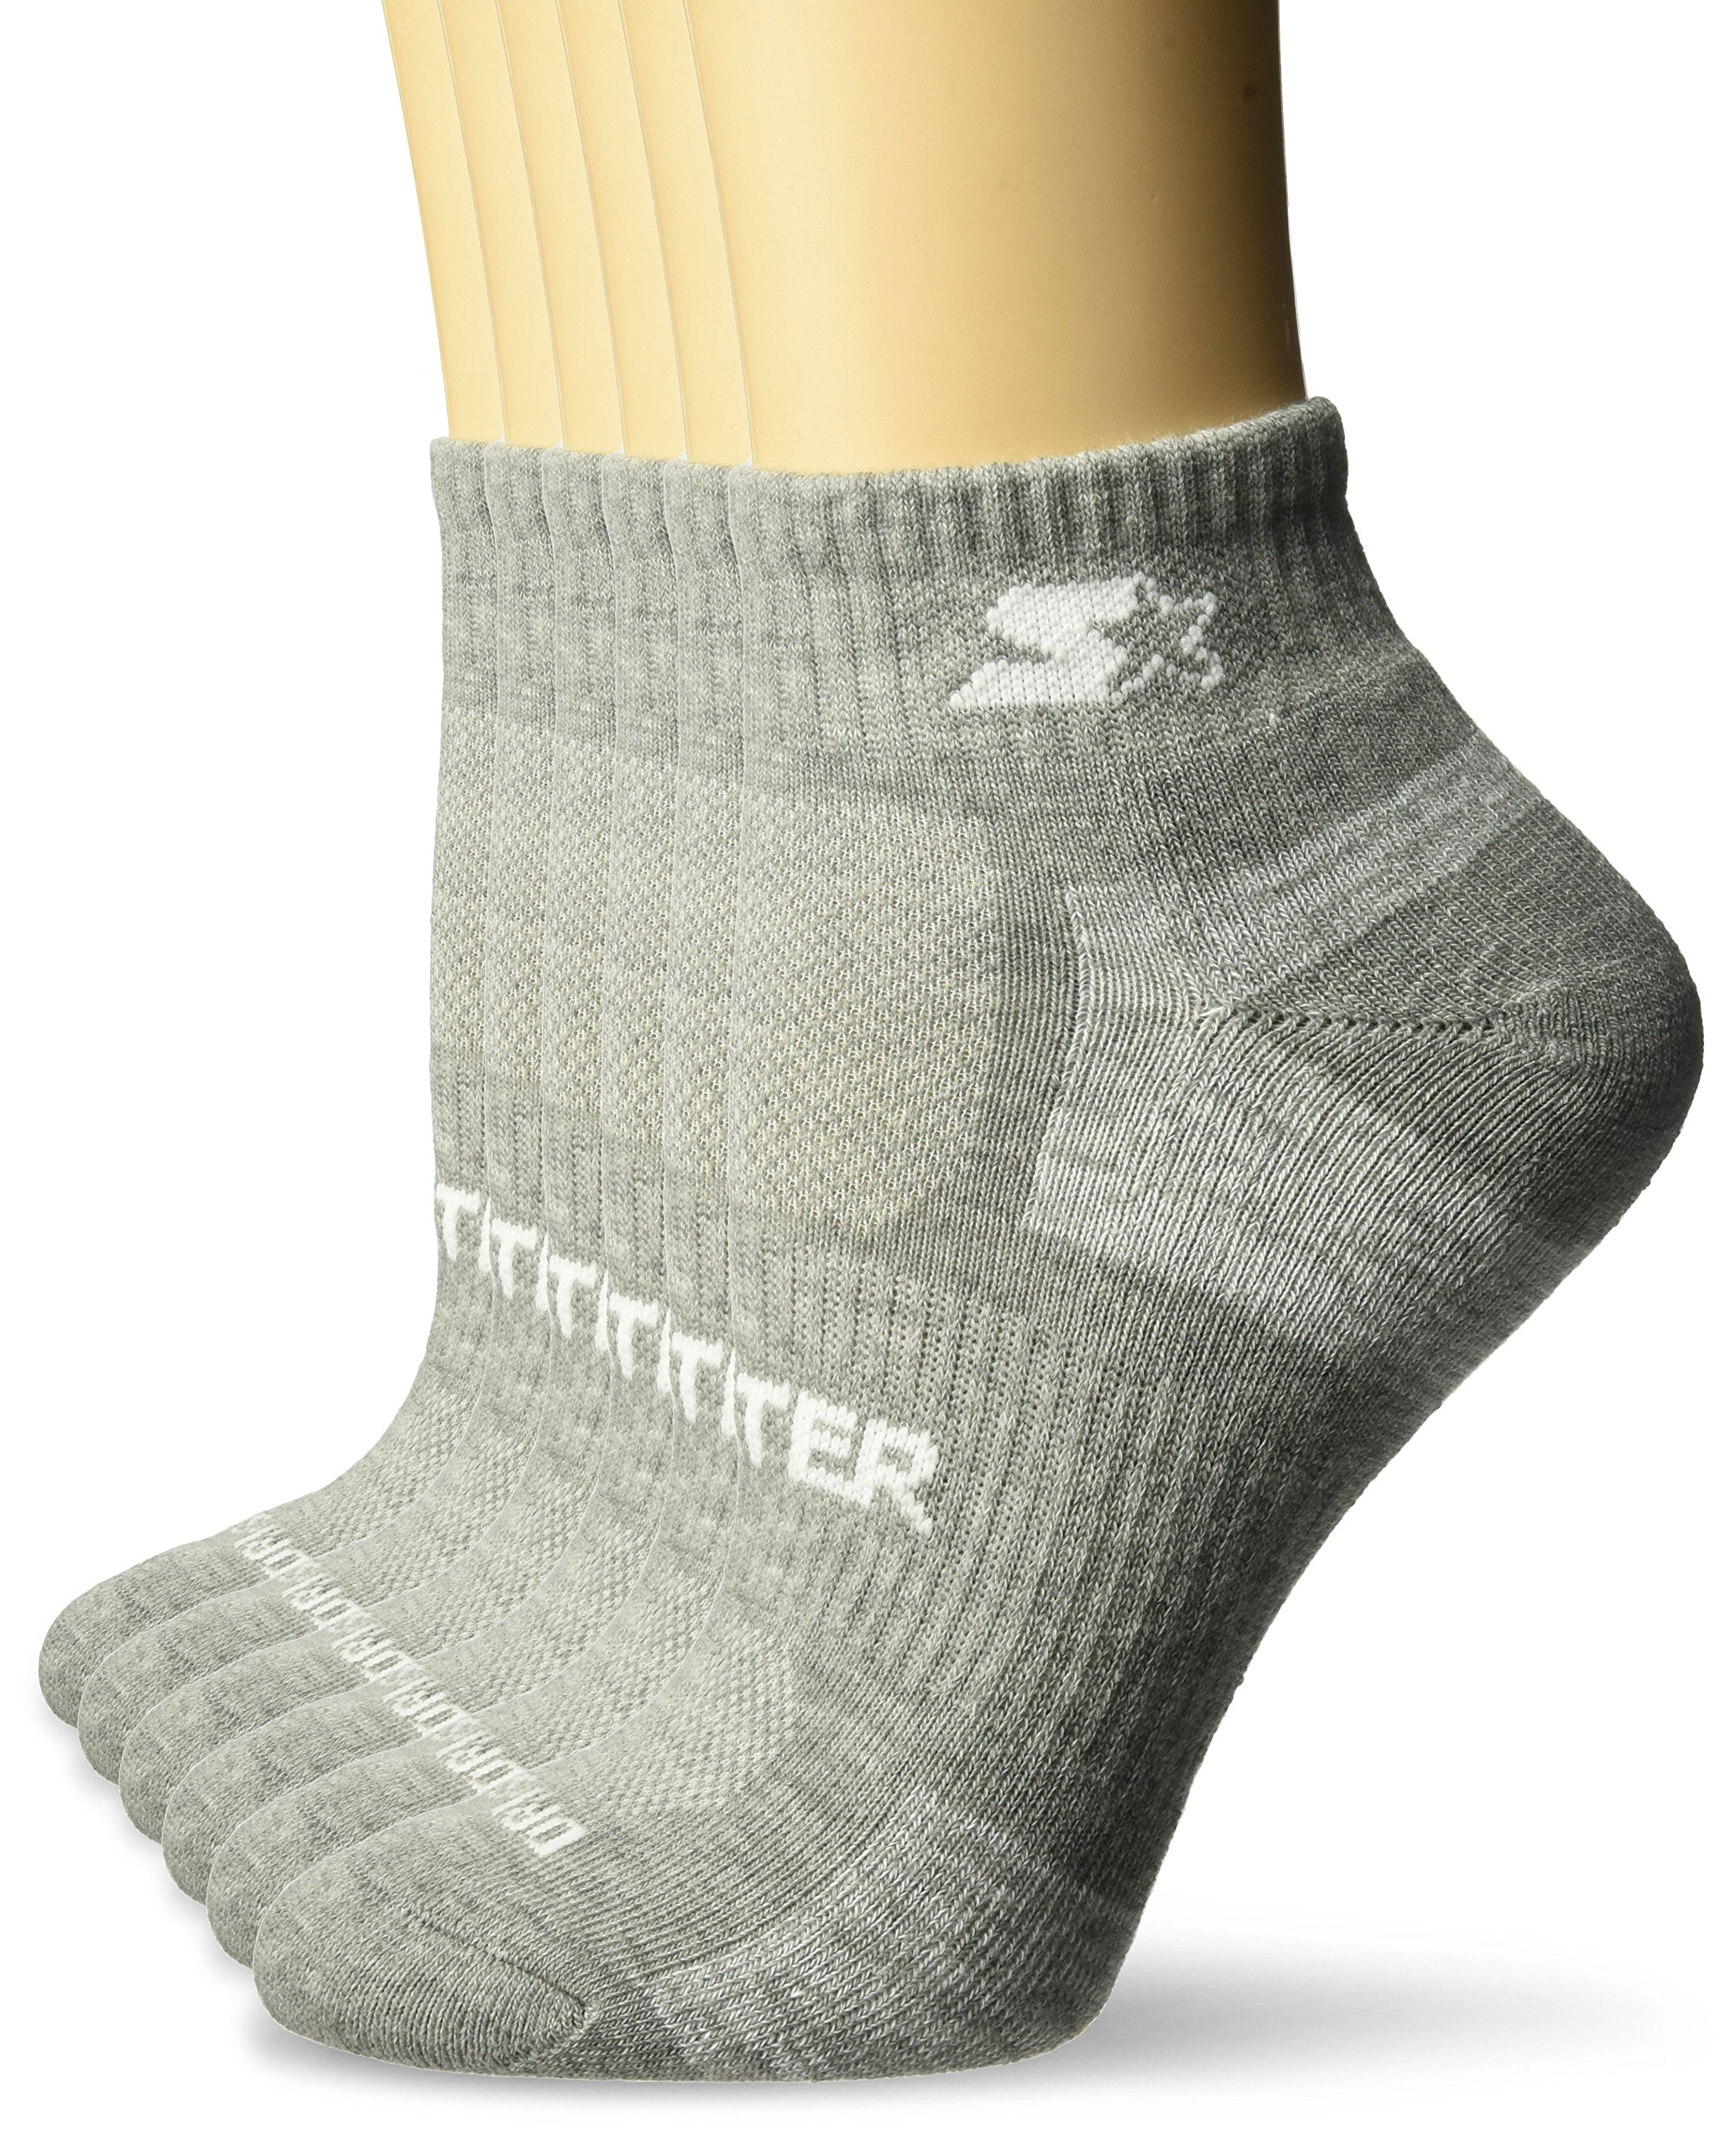 Starter Women's 6-Pack Quarter-Length Athletic Socks, Prime Exclusive, Vapor Grey Heather, Medium (Shoe Size 5-9.5)